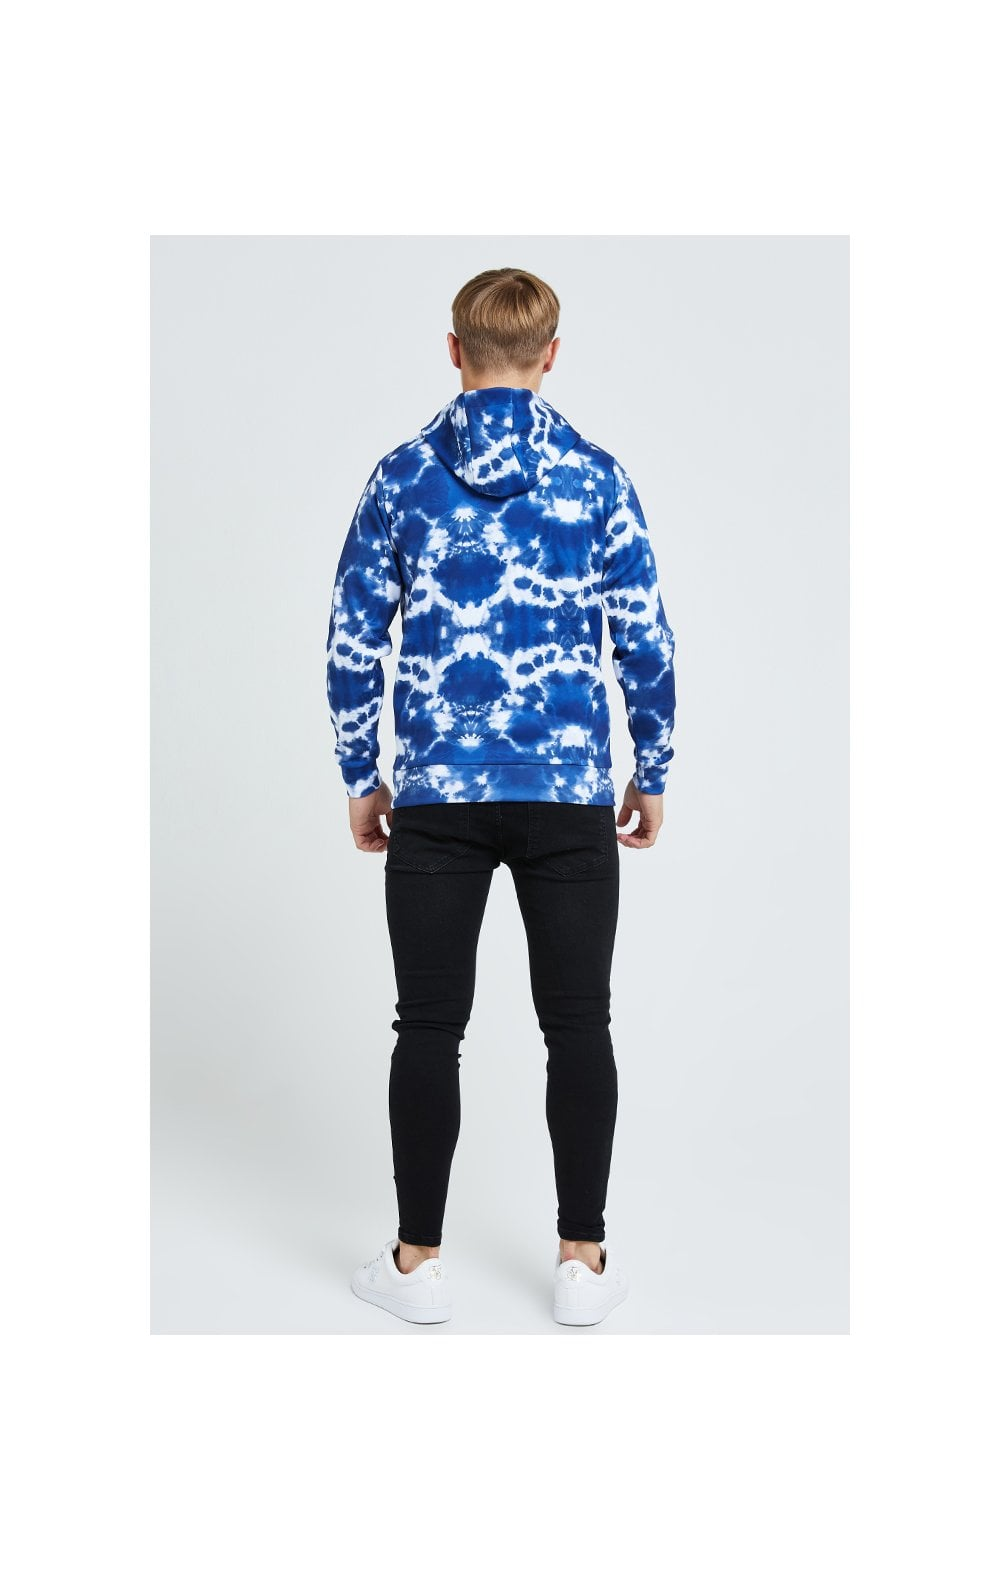 Illusive London Tie Dye Print Hoodie - Blue & White (4)